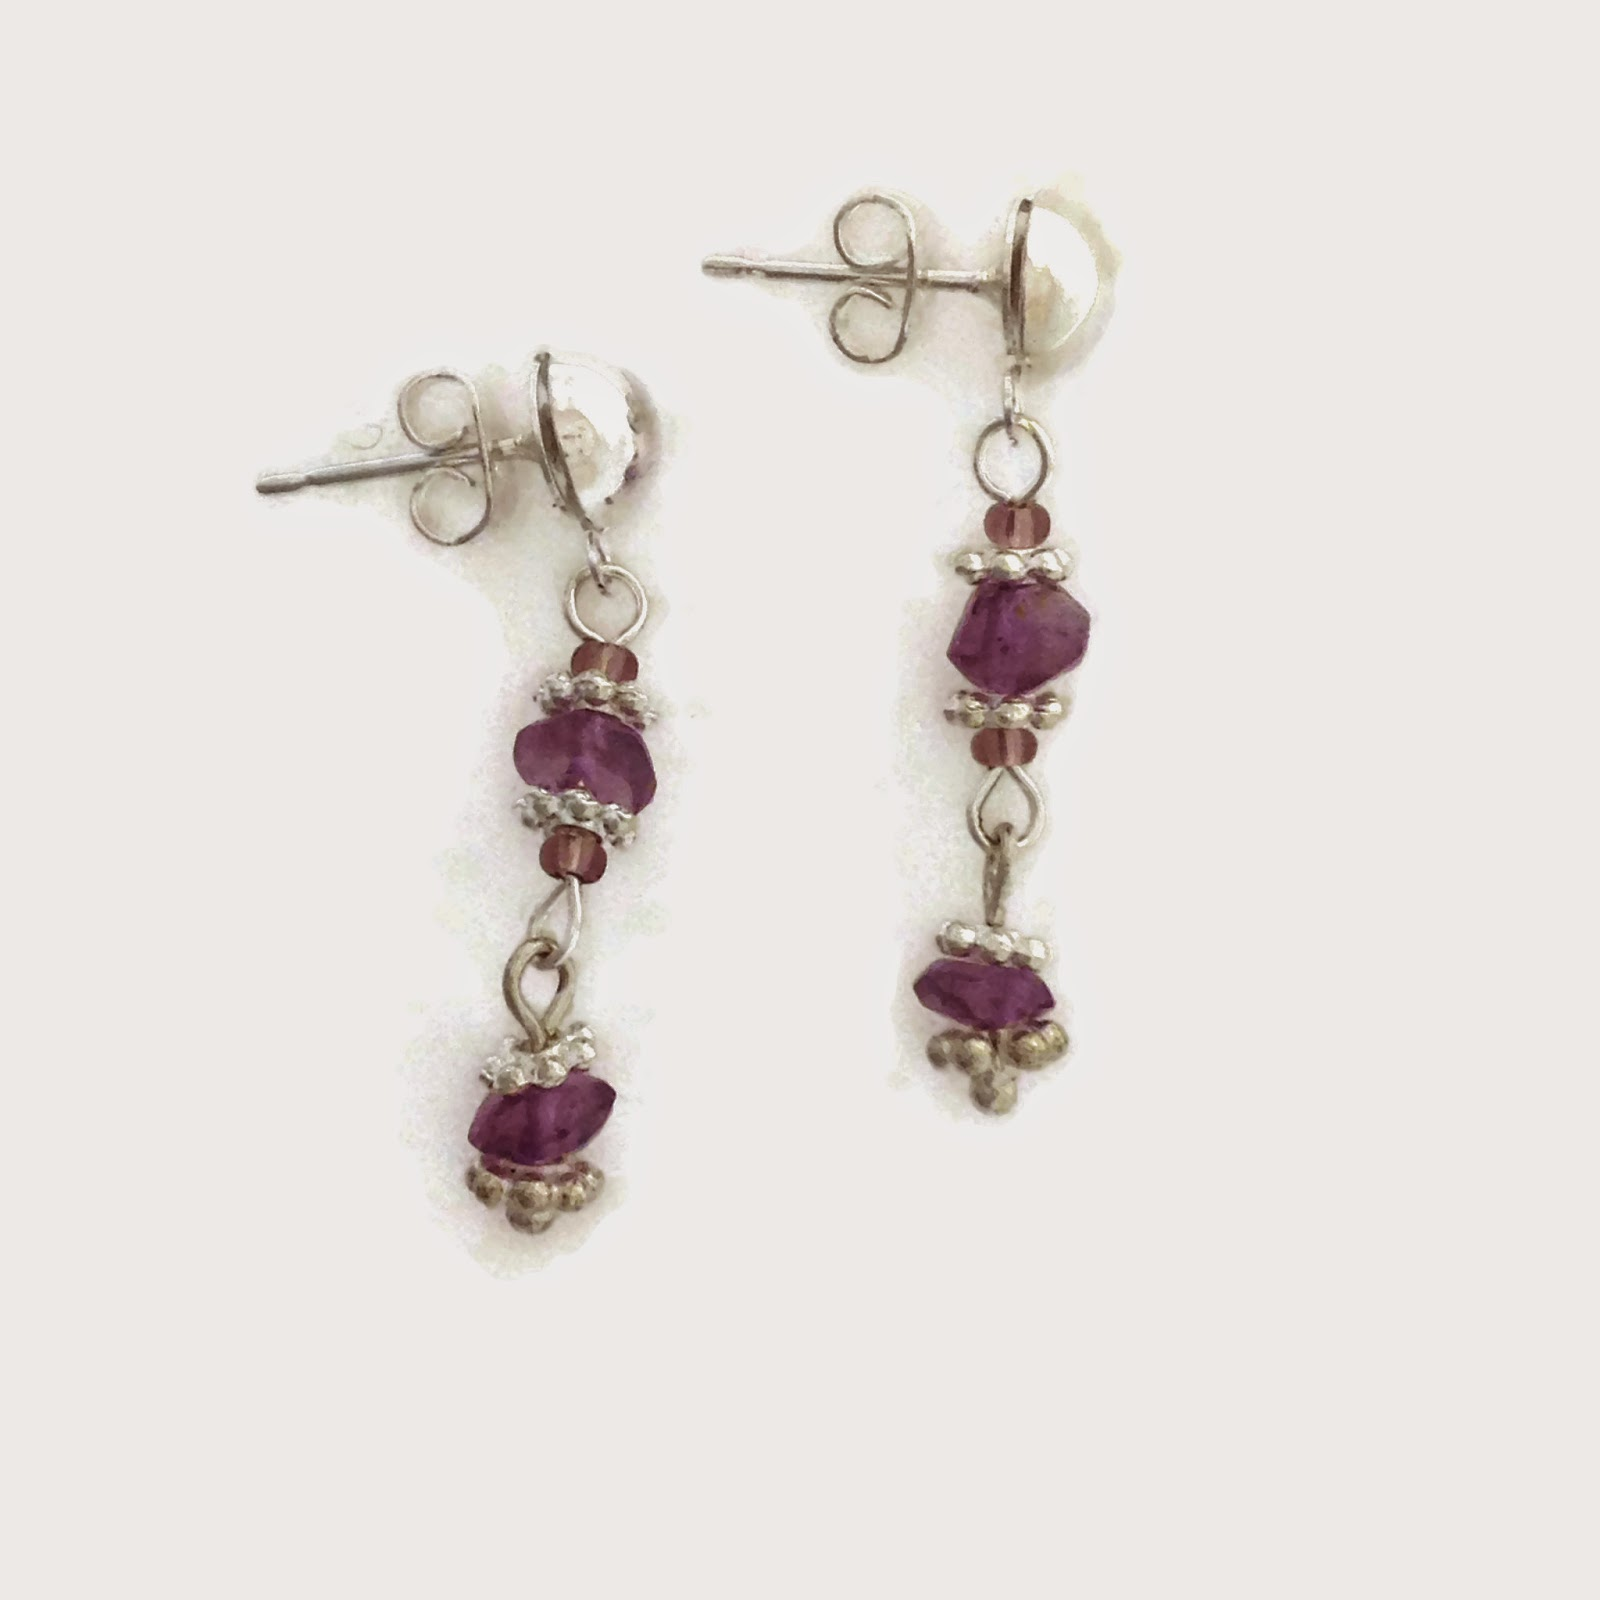 http://www.eightsusquehanna.com/servlet/the-1175/amethyst%2C-nugget%2C-drop%2C-earrings%2C/Detail